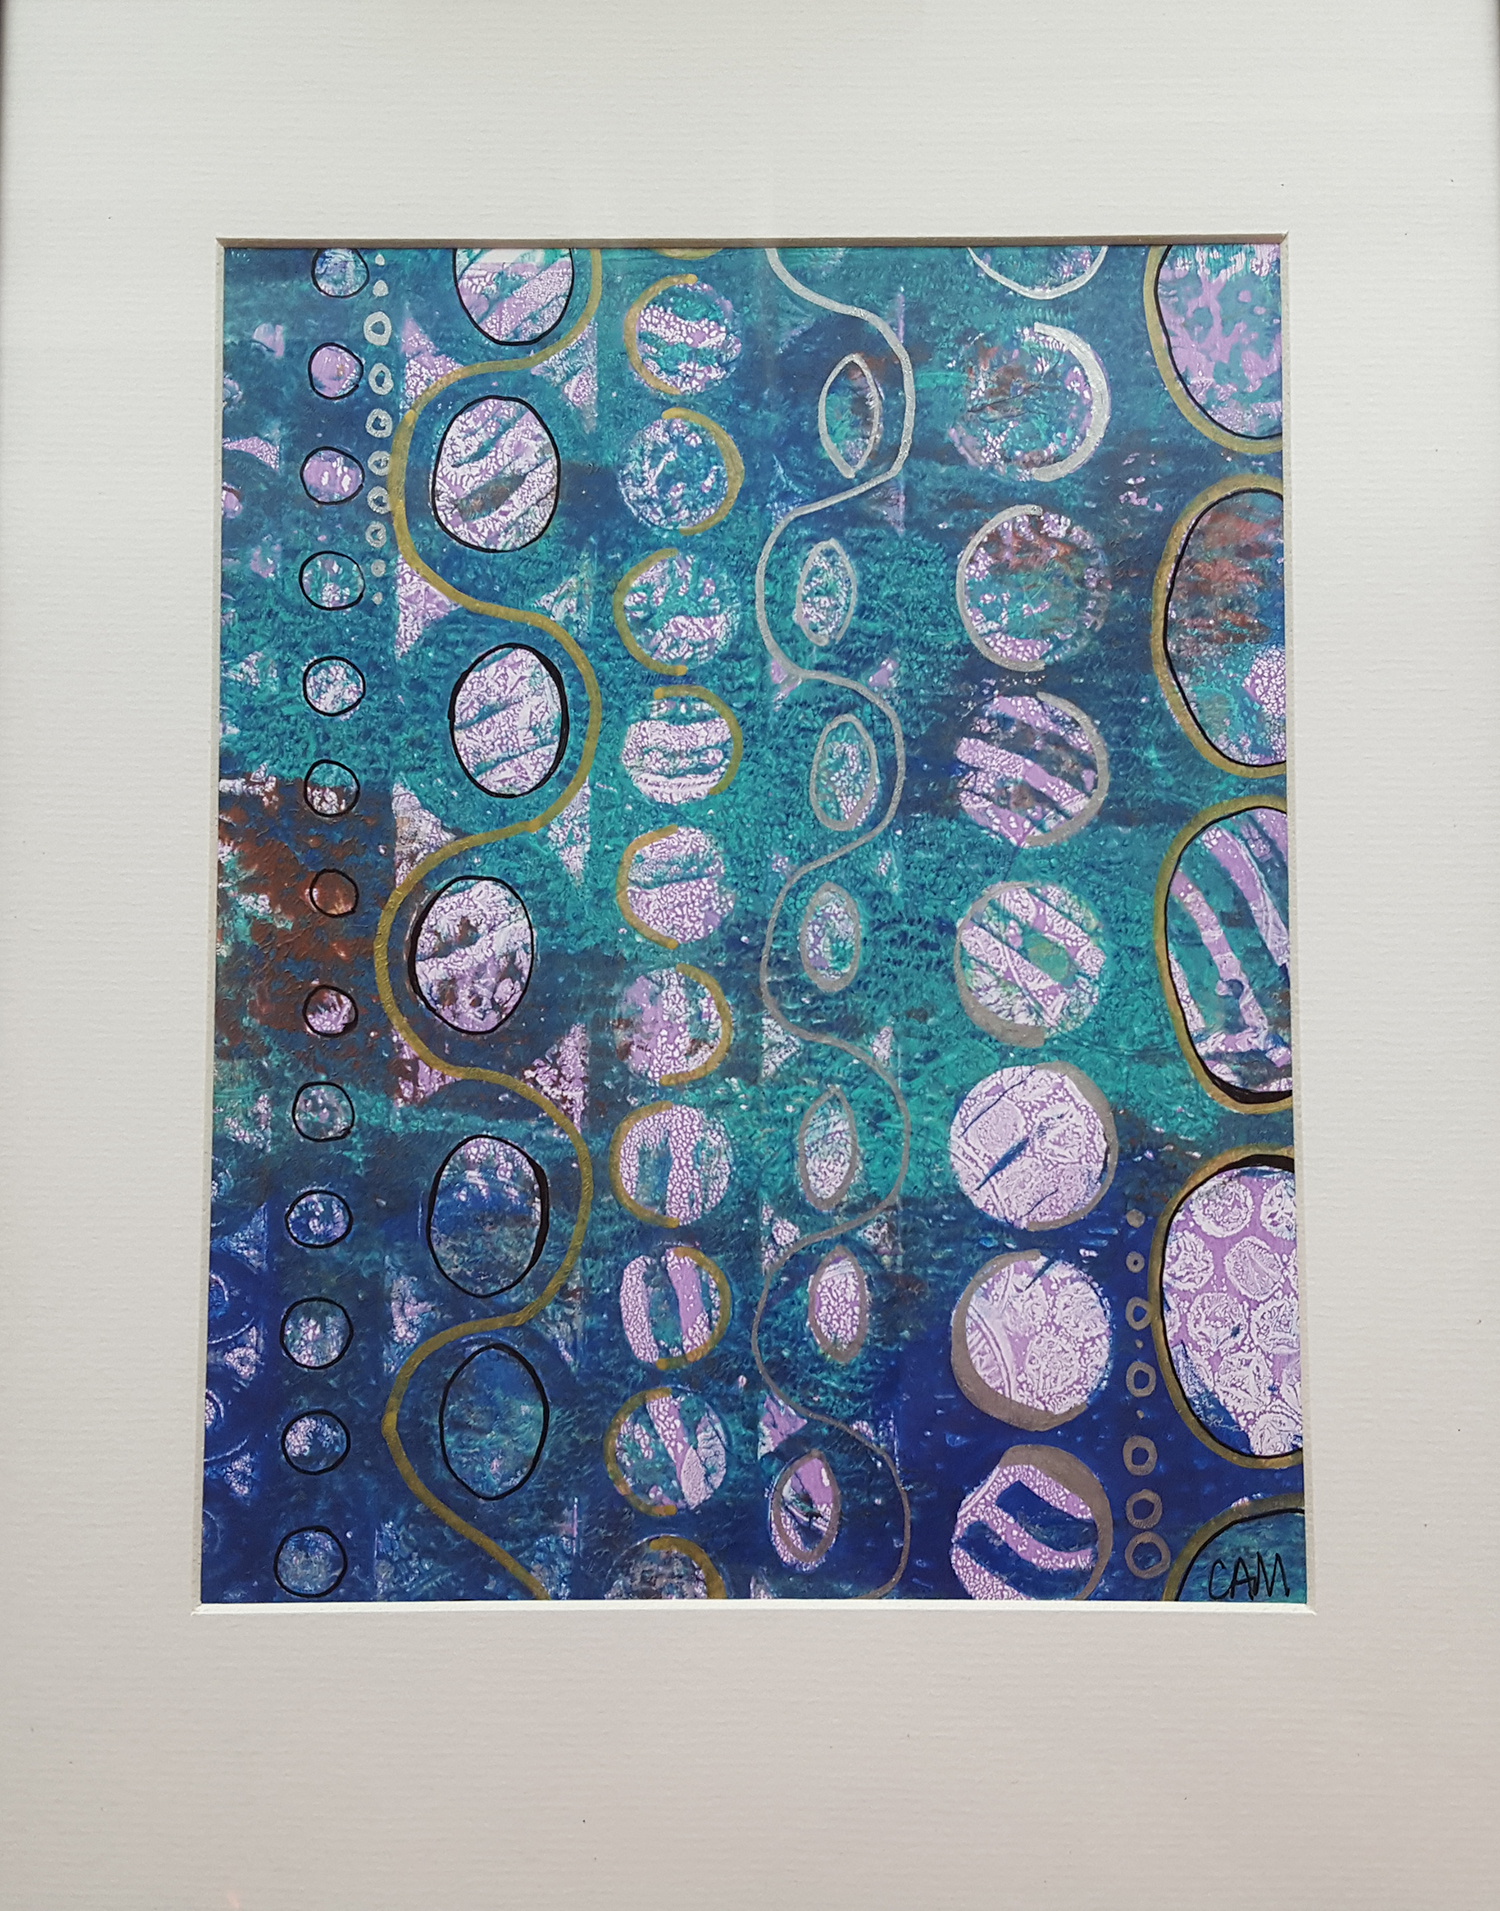 Pathways to Life, 2015. Gelli print, with mixed media.